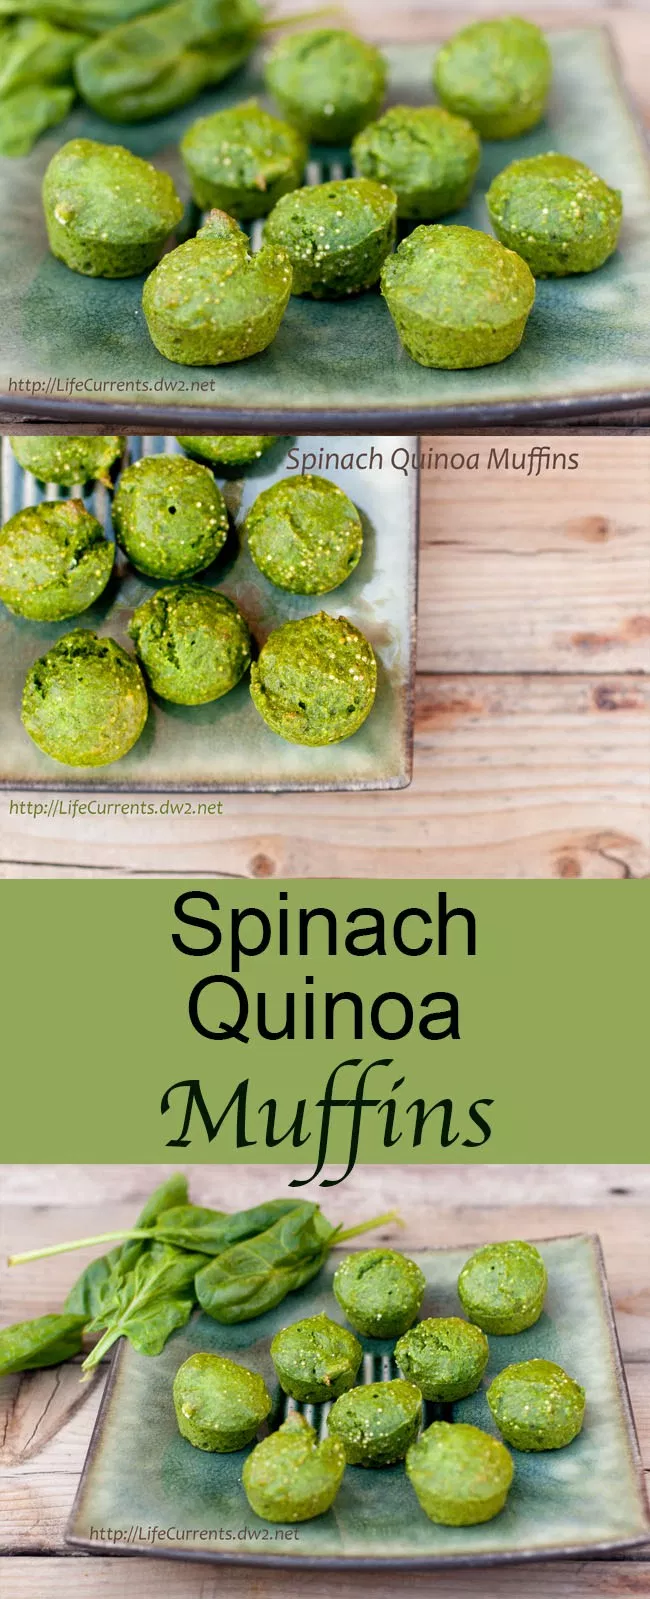 Spinach Quinoa Muffins - Life Currents